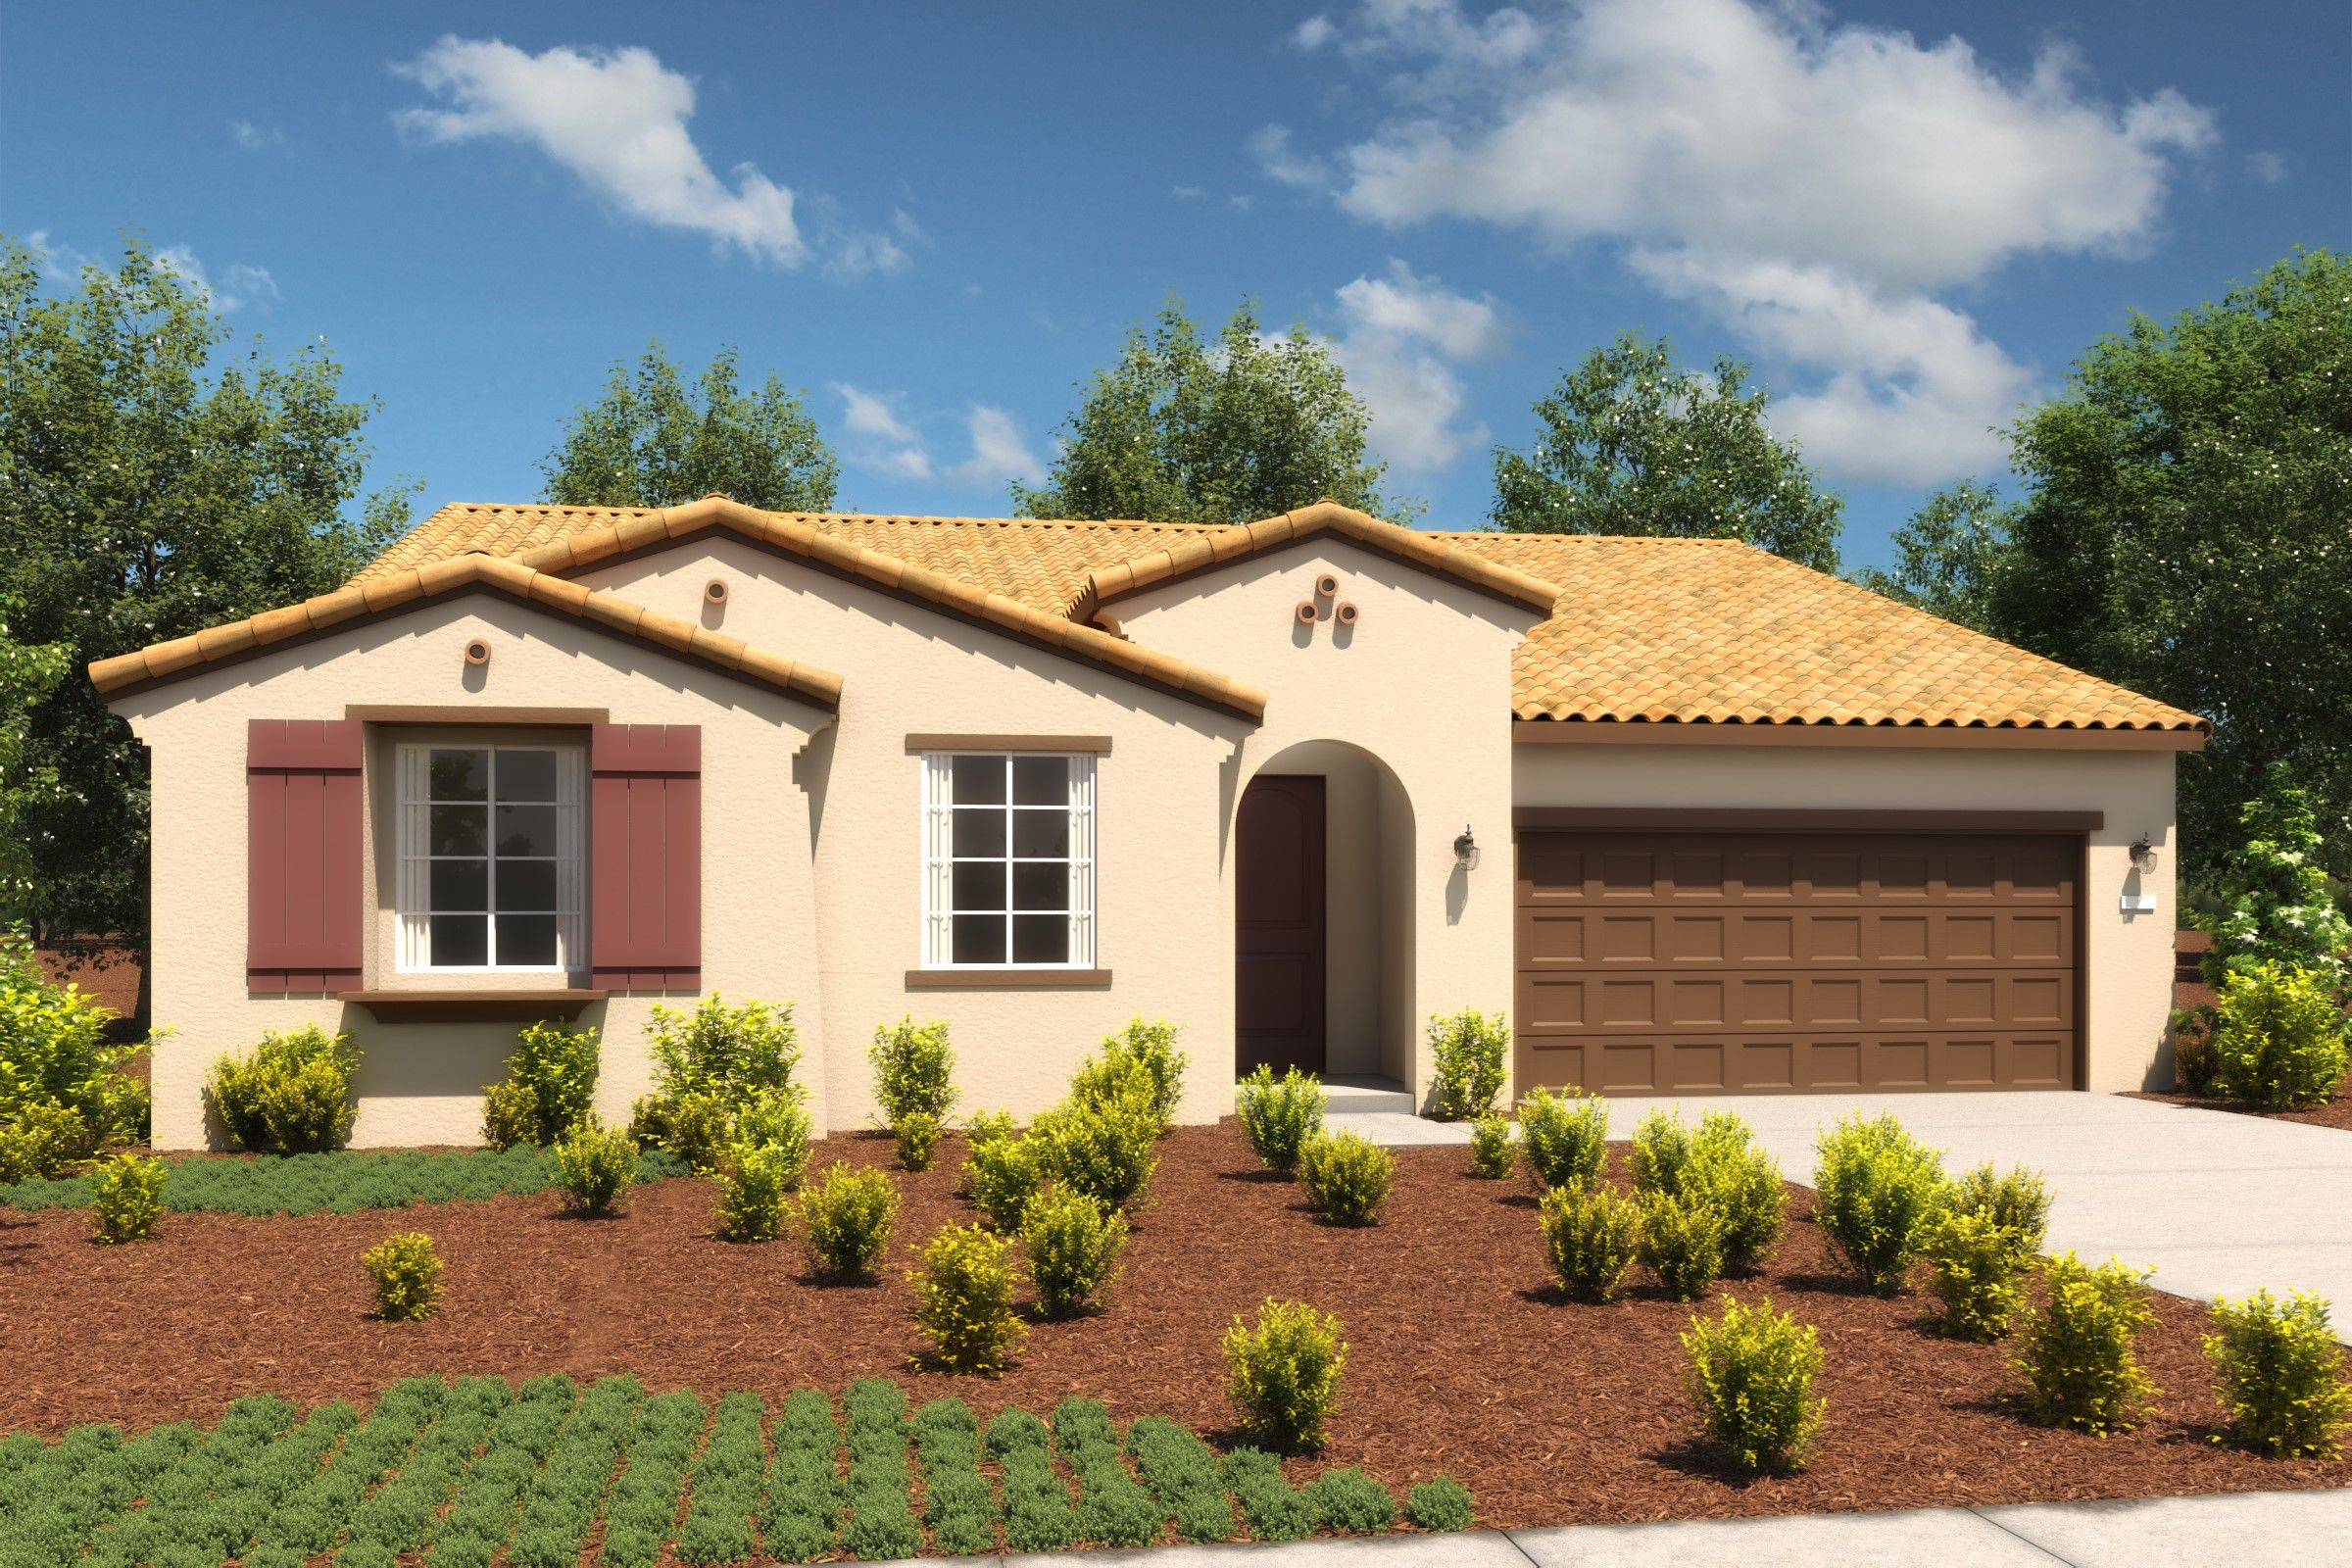 Single Family for Active at Riverview At Monterra - Orchid 4588 Goode Street Antioch, California 94531 United States